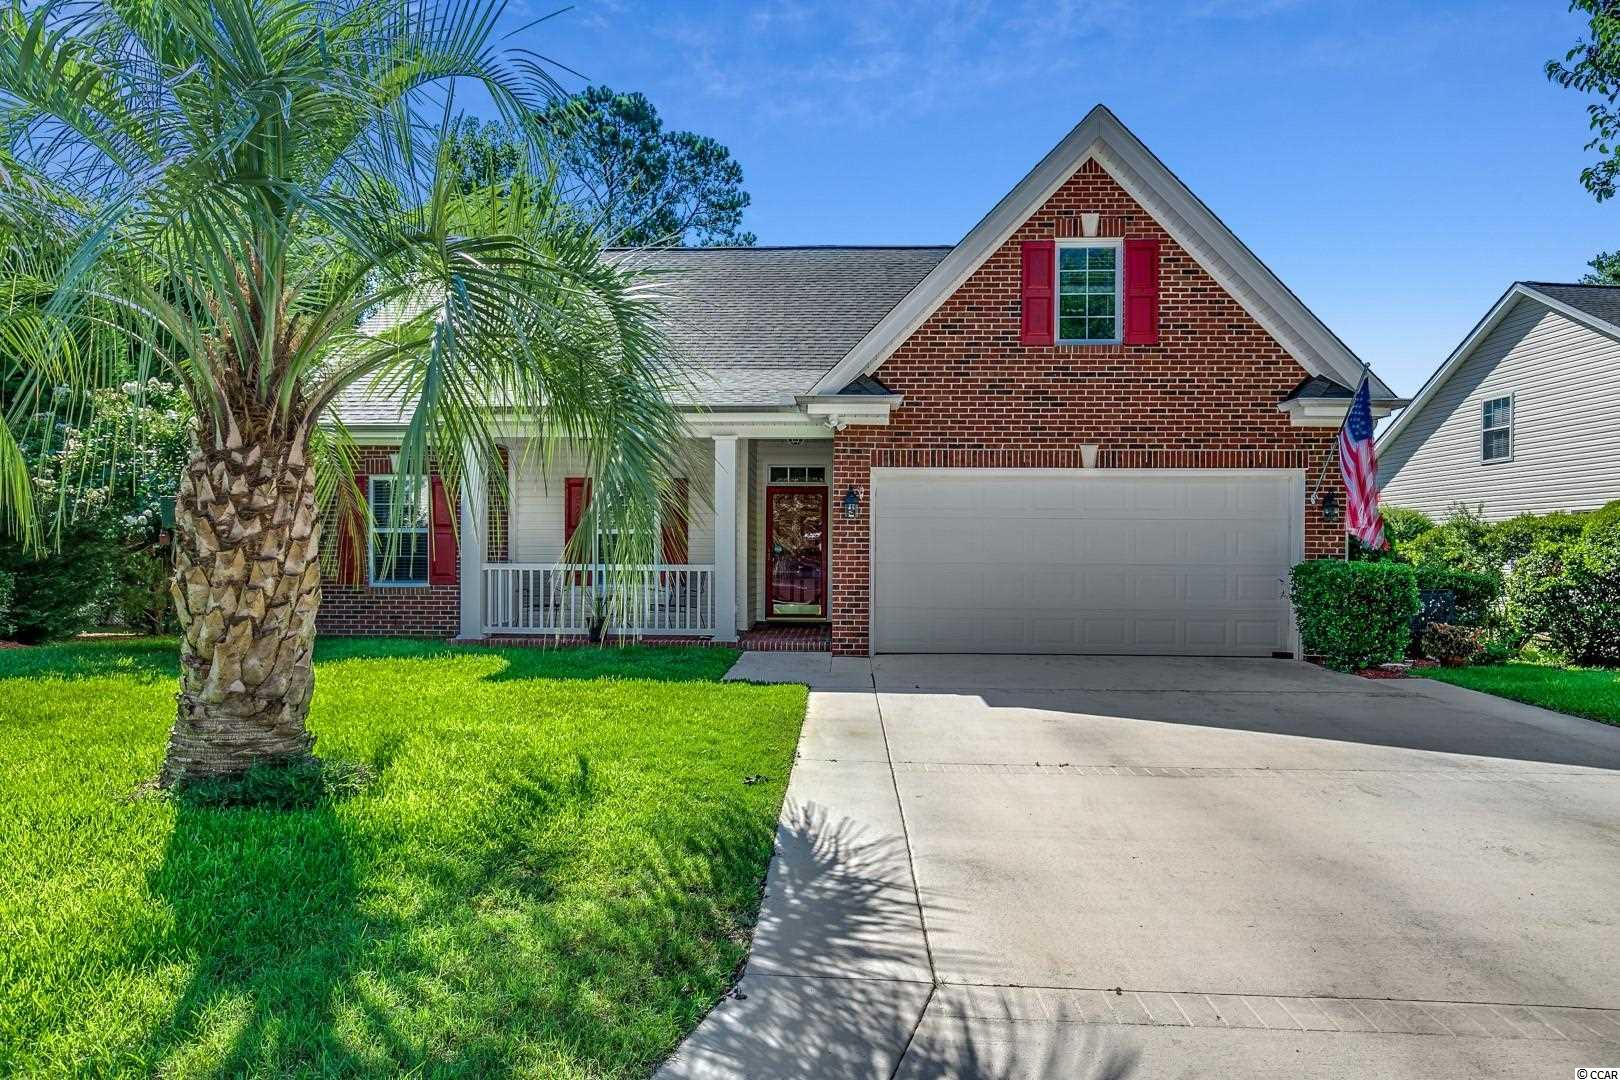 Take a look at this beautiful cozy 4 br 2 ba home that offers a fireplace, Carolins Room, Hot Tub. Home is located in the sought after community of Heather Lakes. You will find it close to the state line of NC and across the street from Lowes Food Shopping Center. Enjoy an afternoon strolll around the lake or take a cool down in the community pool. Thinking about a seafood dinner at famous Calabash or checking out the live shows and entertainment in North Myrtle Beach, Sunset at the Beach or Ocean Isle Beach. Anyway you flip it you will enjoy and not want to leave! Square footage is approximate and not guaranteed. Buyers responsible for verification.